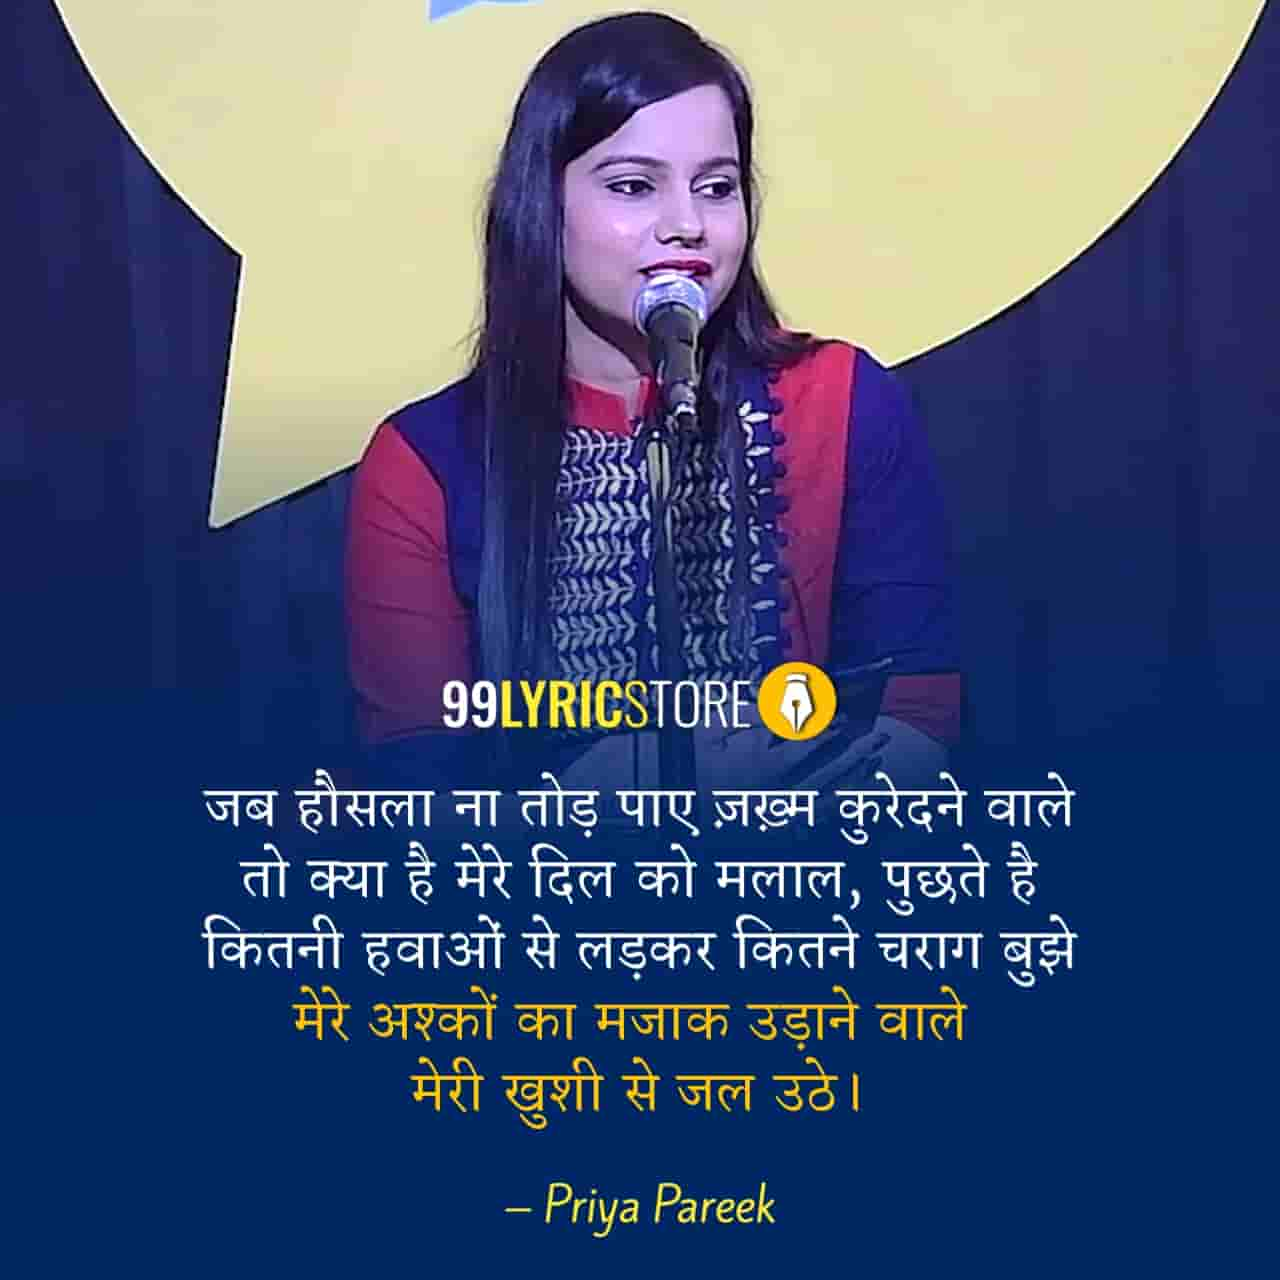 This beautiful poetry 'Dobara Mohabbat Ki Maine' has written and performed by Priya Pareek on The Social House's Plateform.